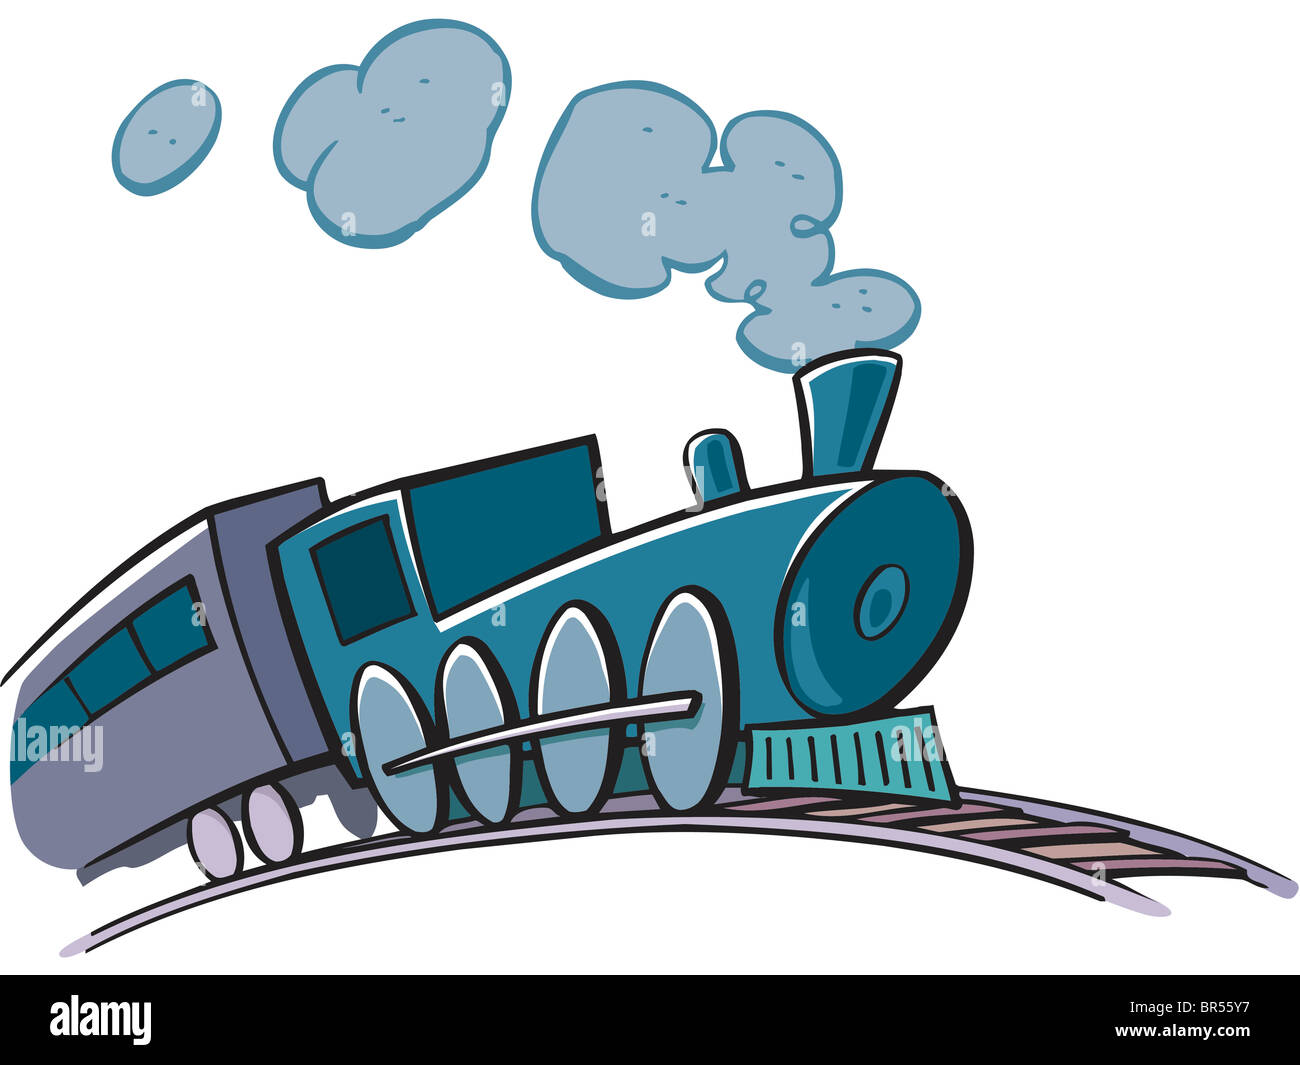 Drawing of a train Stock Photo